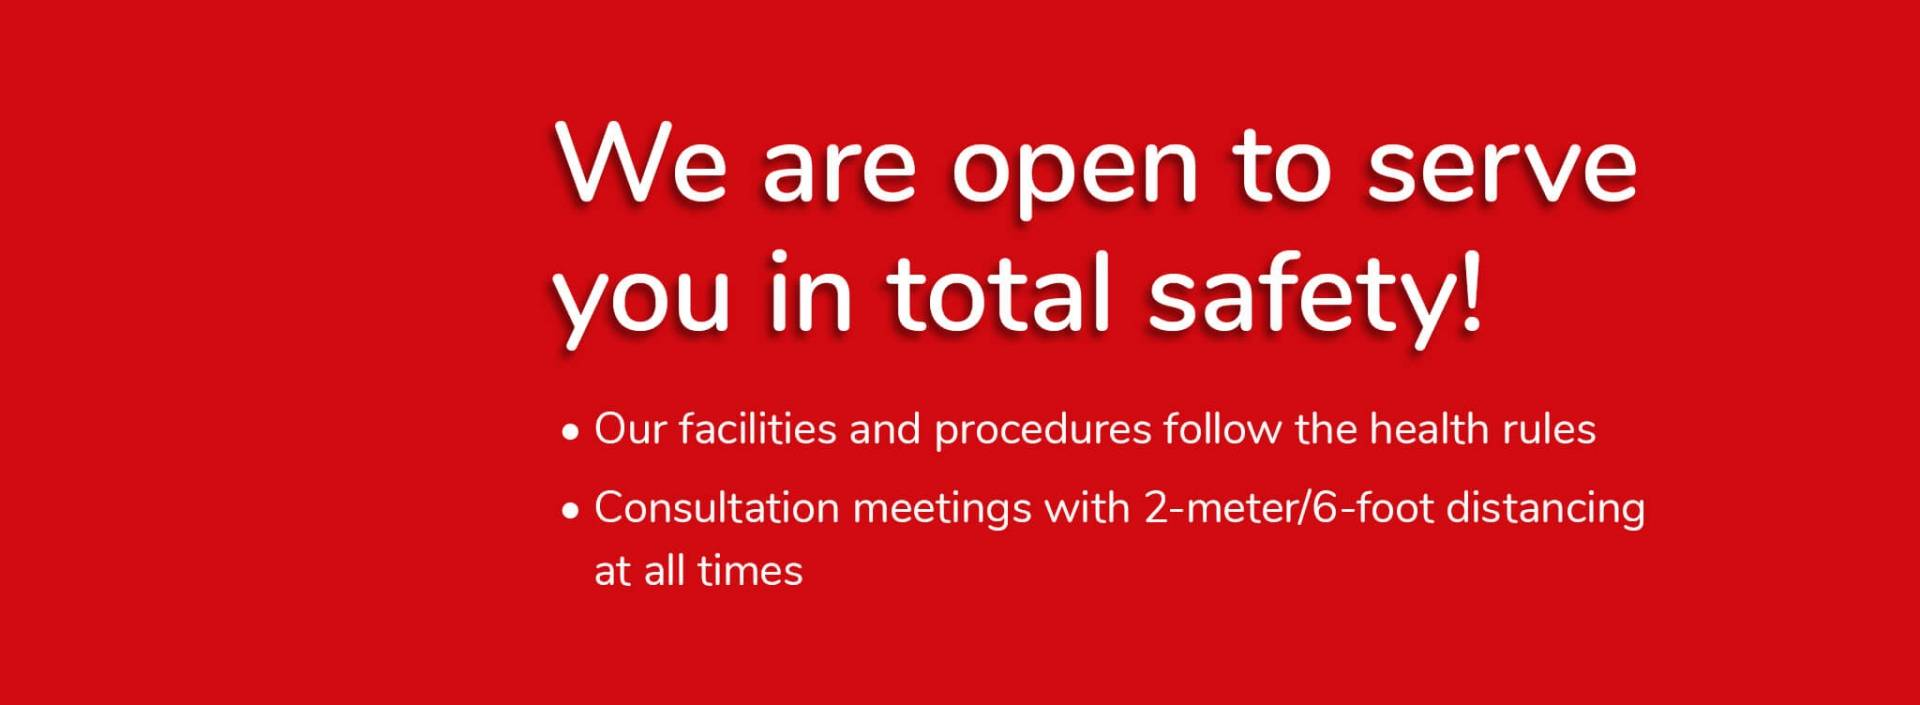 We are open to serve you in total safety